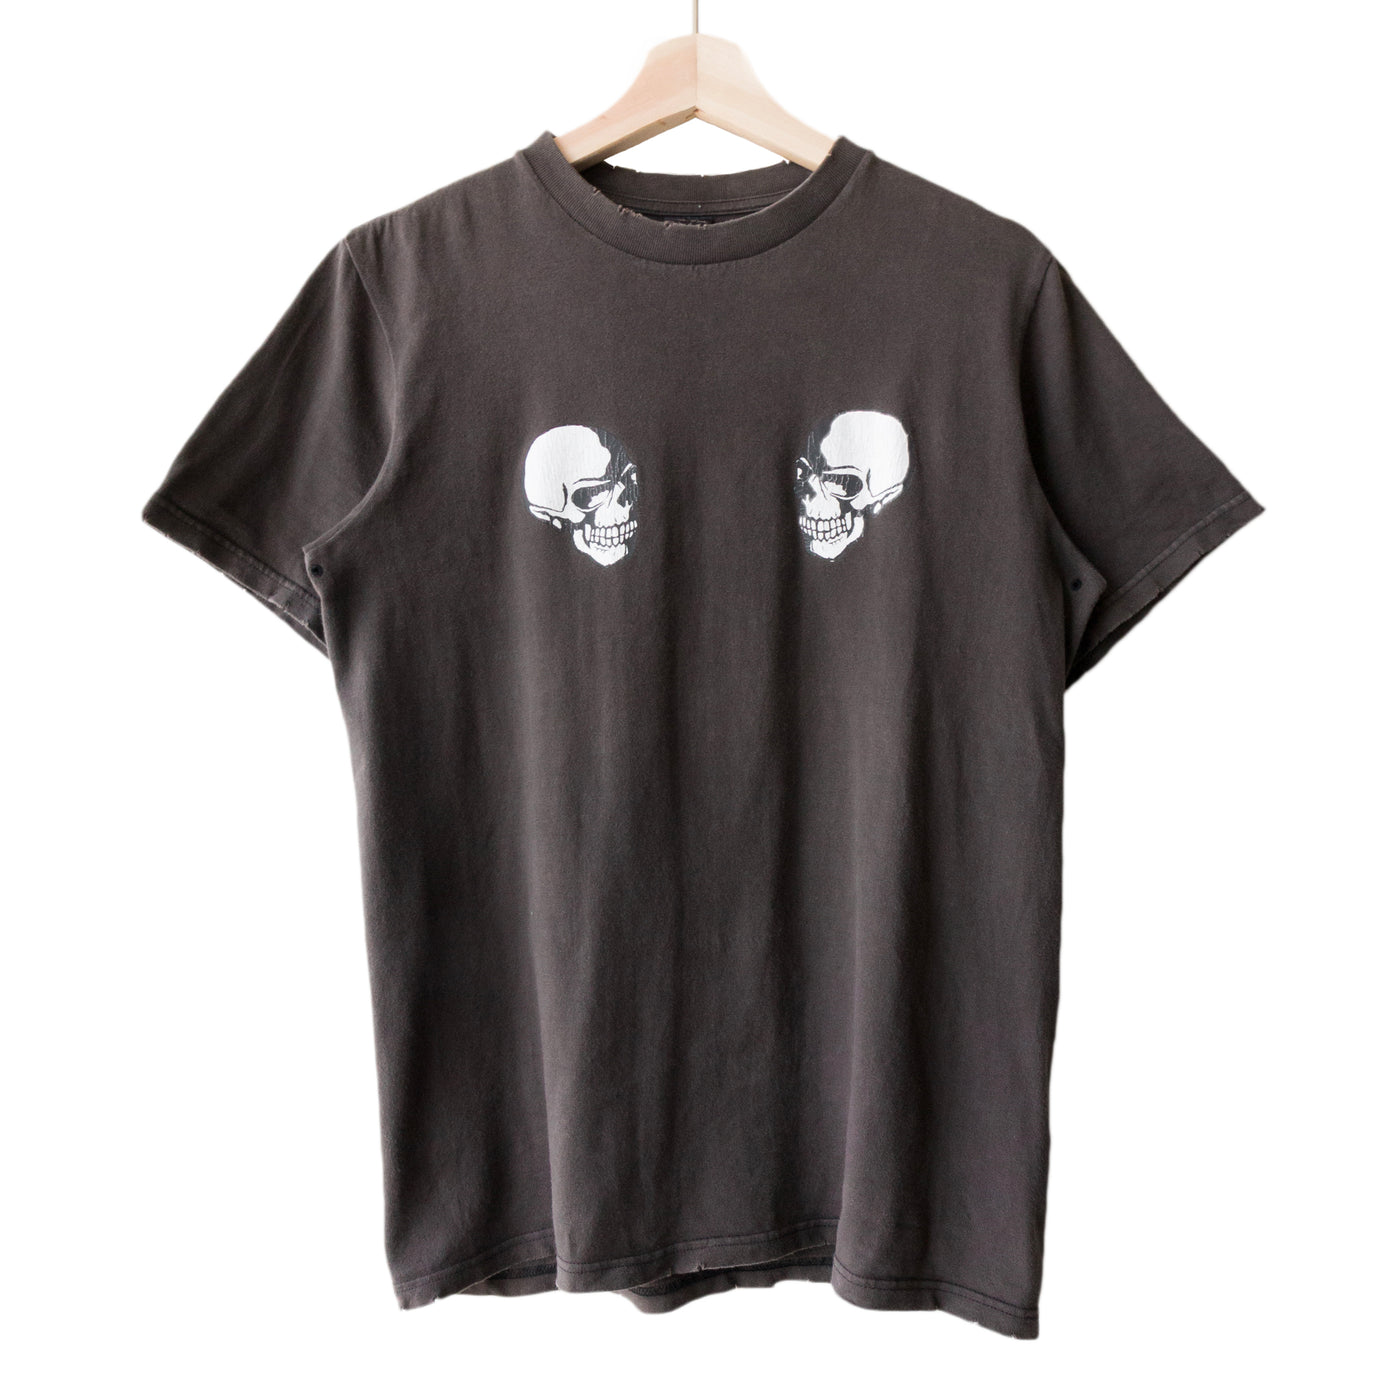 Number (N)ine The Clash Double Skull Tee - SS04